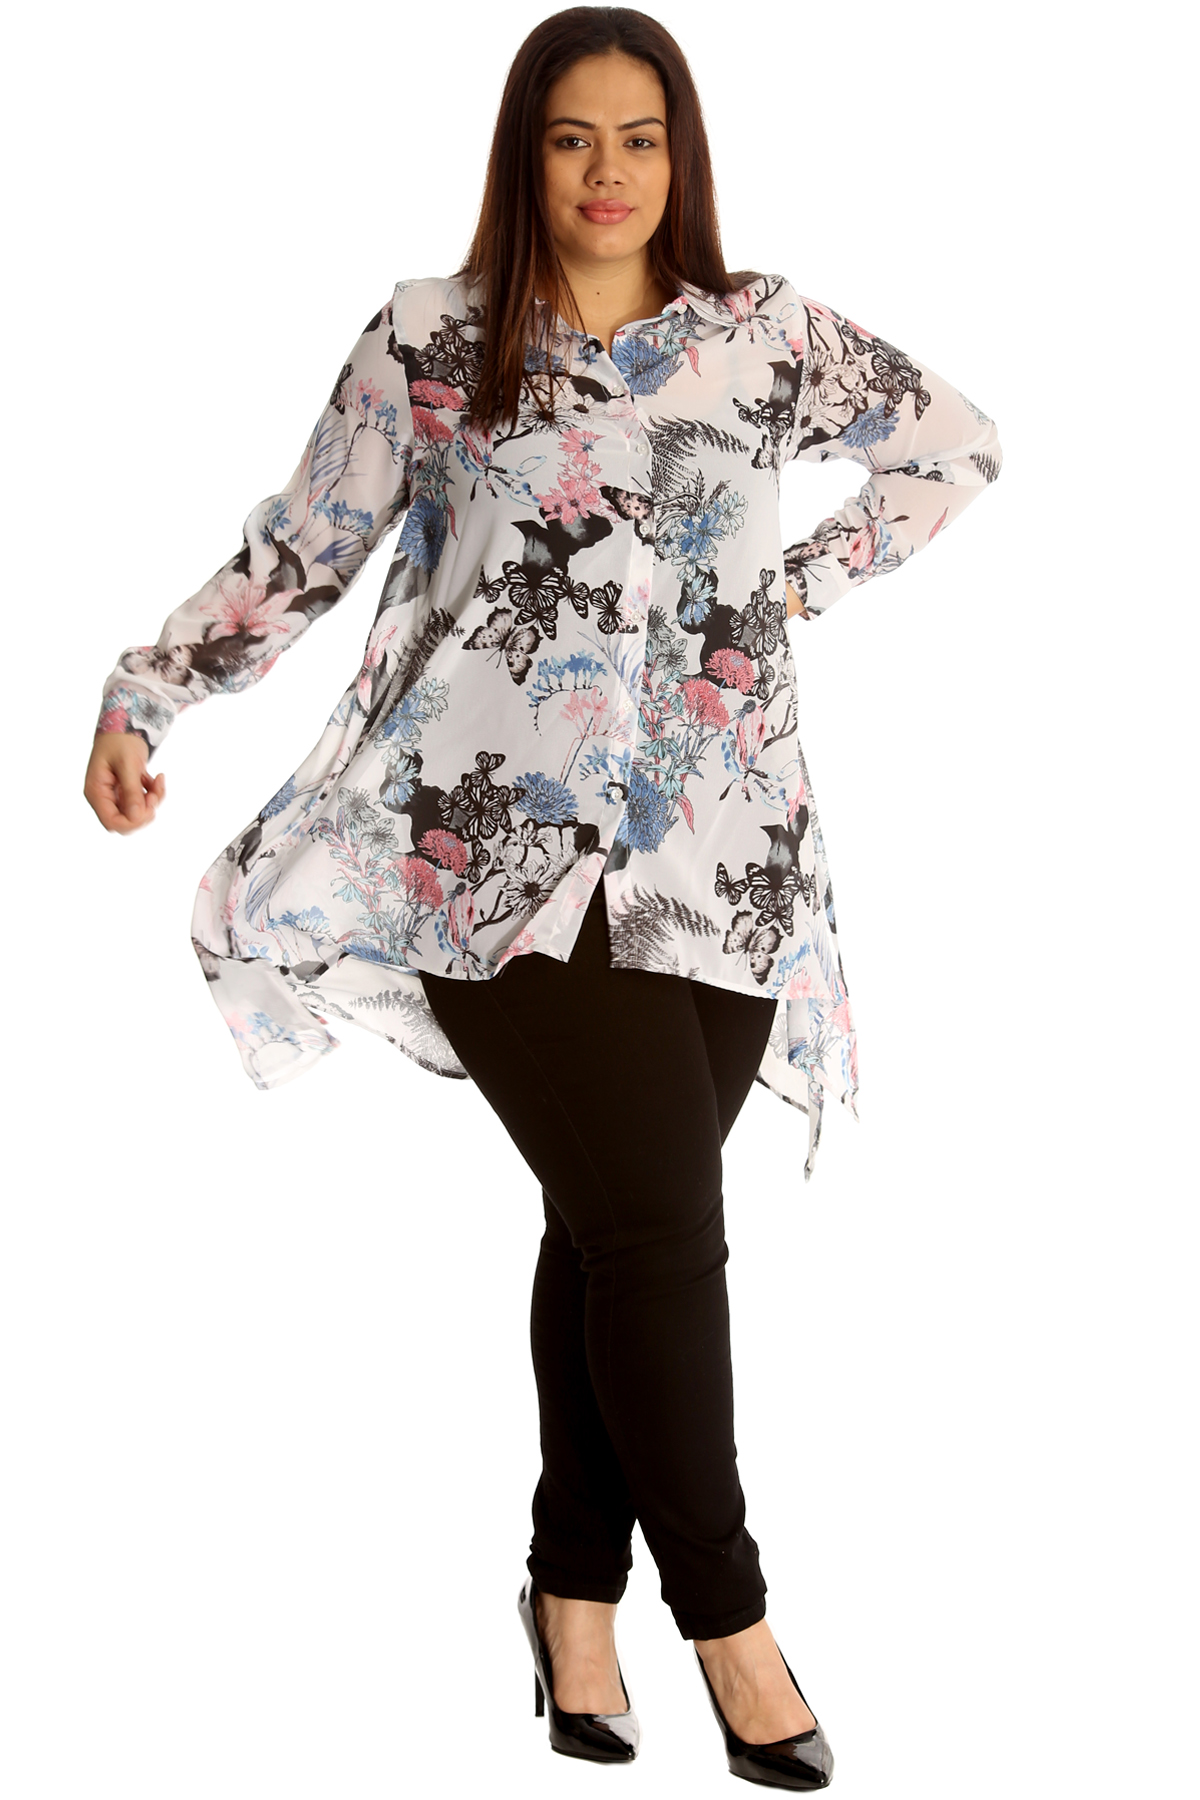 New-Women-Shirt-Plus-Size-Ladies-Butterfly-Floral-Print-Top-Blouse-Chiffon-Style